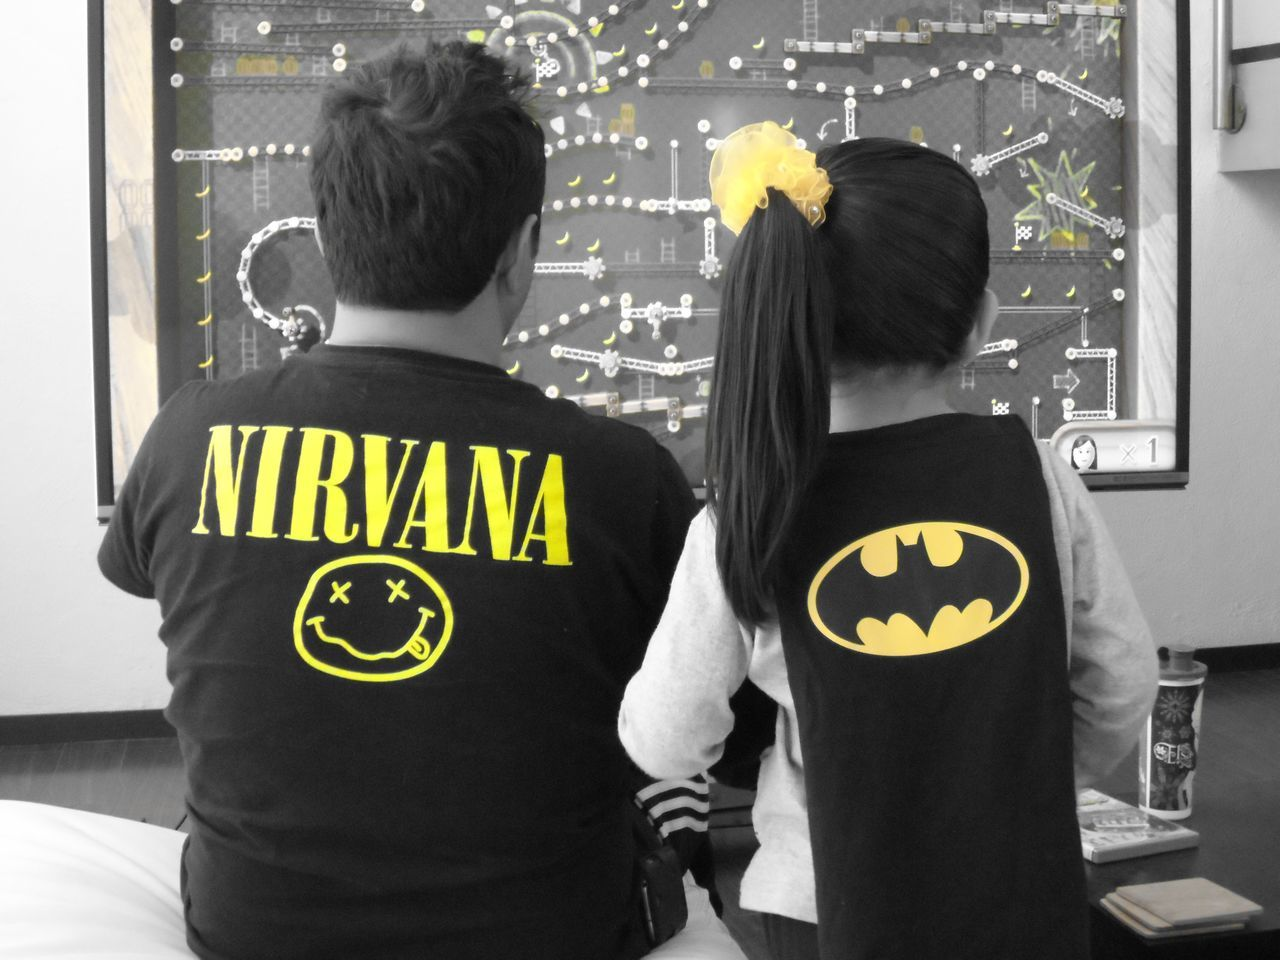 Taking Photos Relaxing Enjoying Life Hanging Out Girl Toddler  Family Family❤ Father And Daughter Black And White Batman Batman Time Batman ❤ Nirvana Shirt Nirvana NirvanaFan Two Is Better Than One Fatherhood Moments